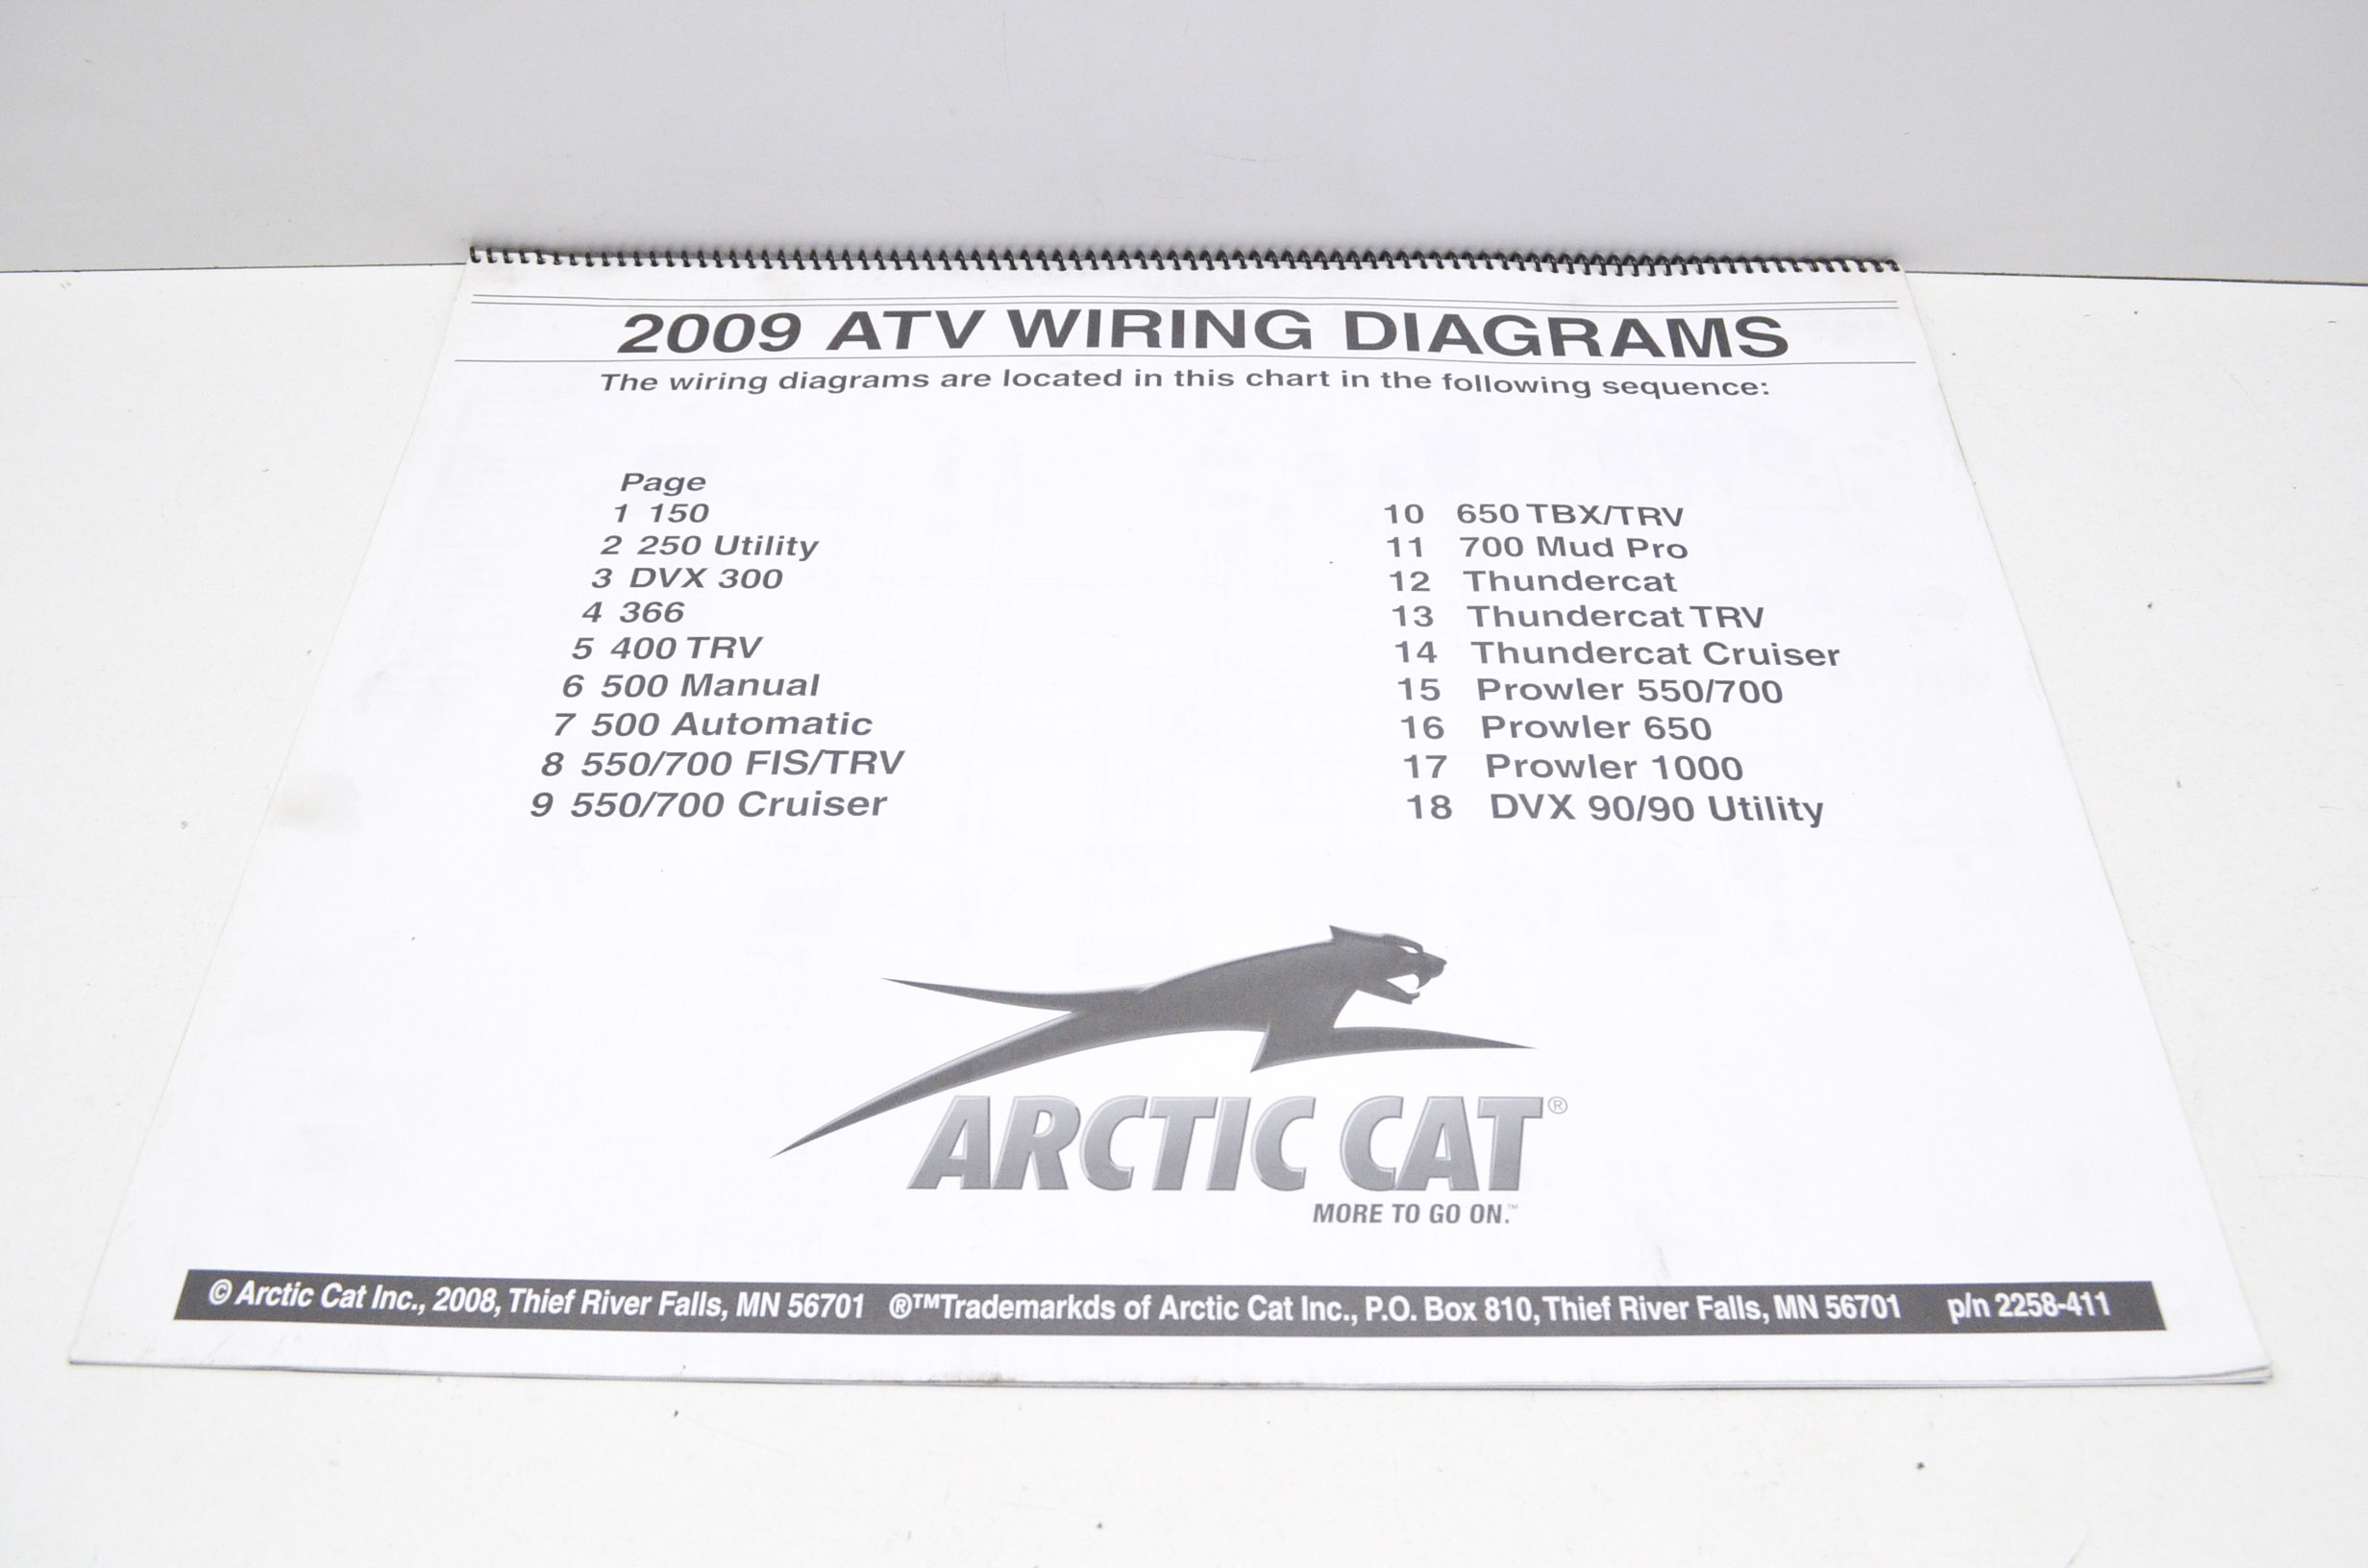 Arctic Cat 90 Atv Wiring Diagram Bhet Room Diagrams 2258 411 2009 Qty 1 Walmart Comarctic